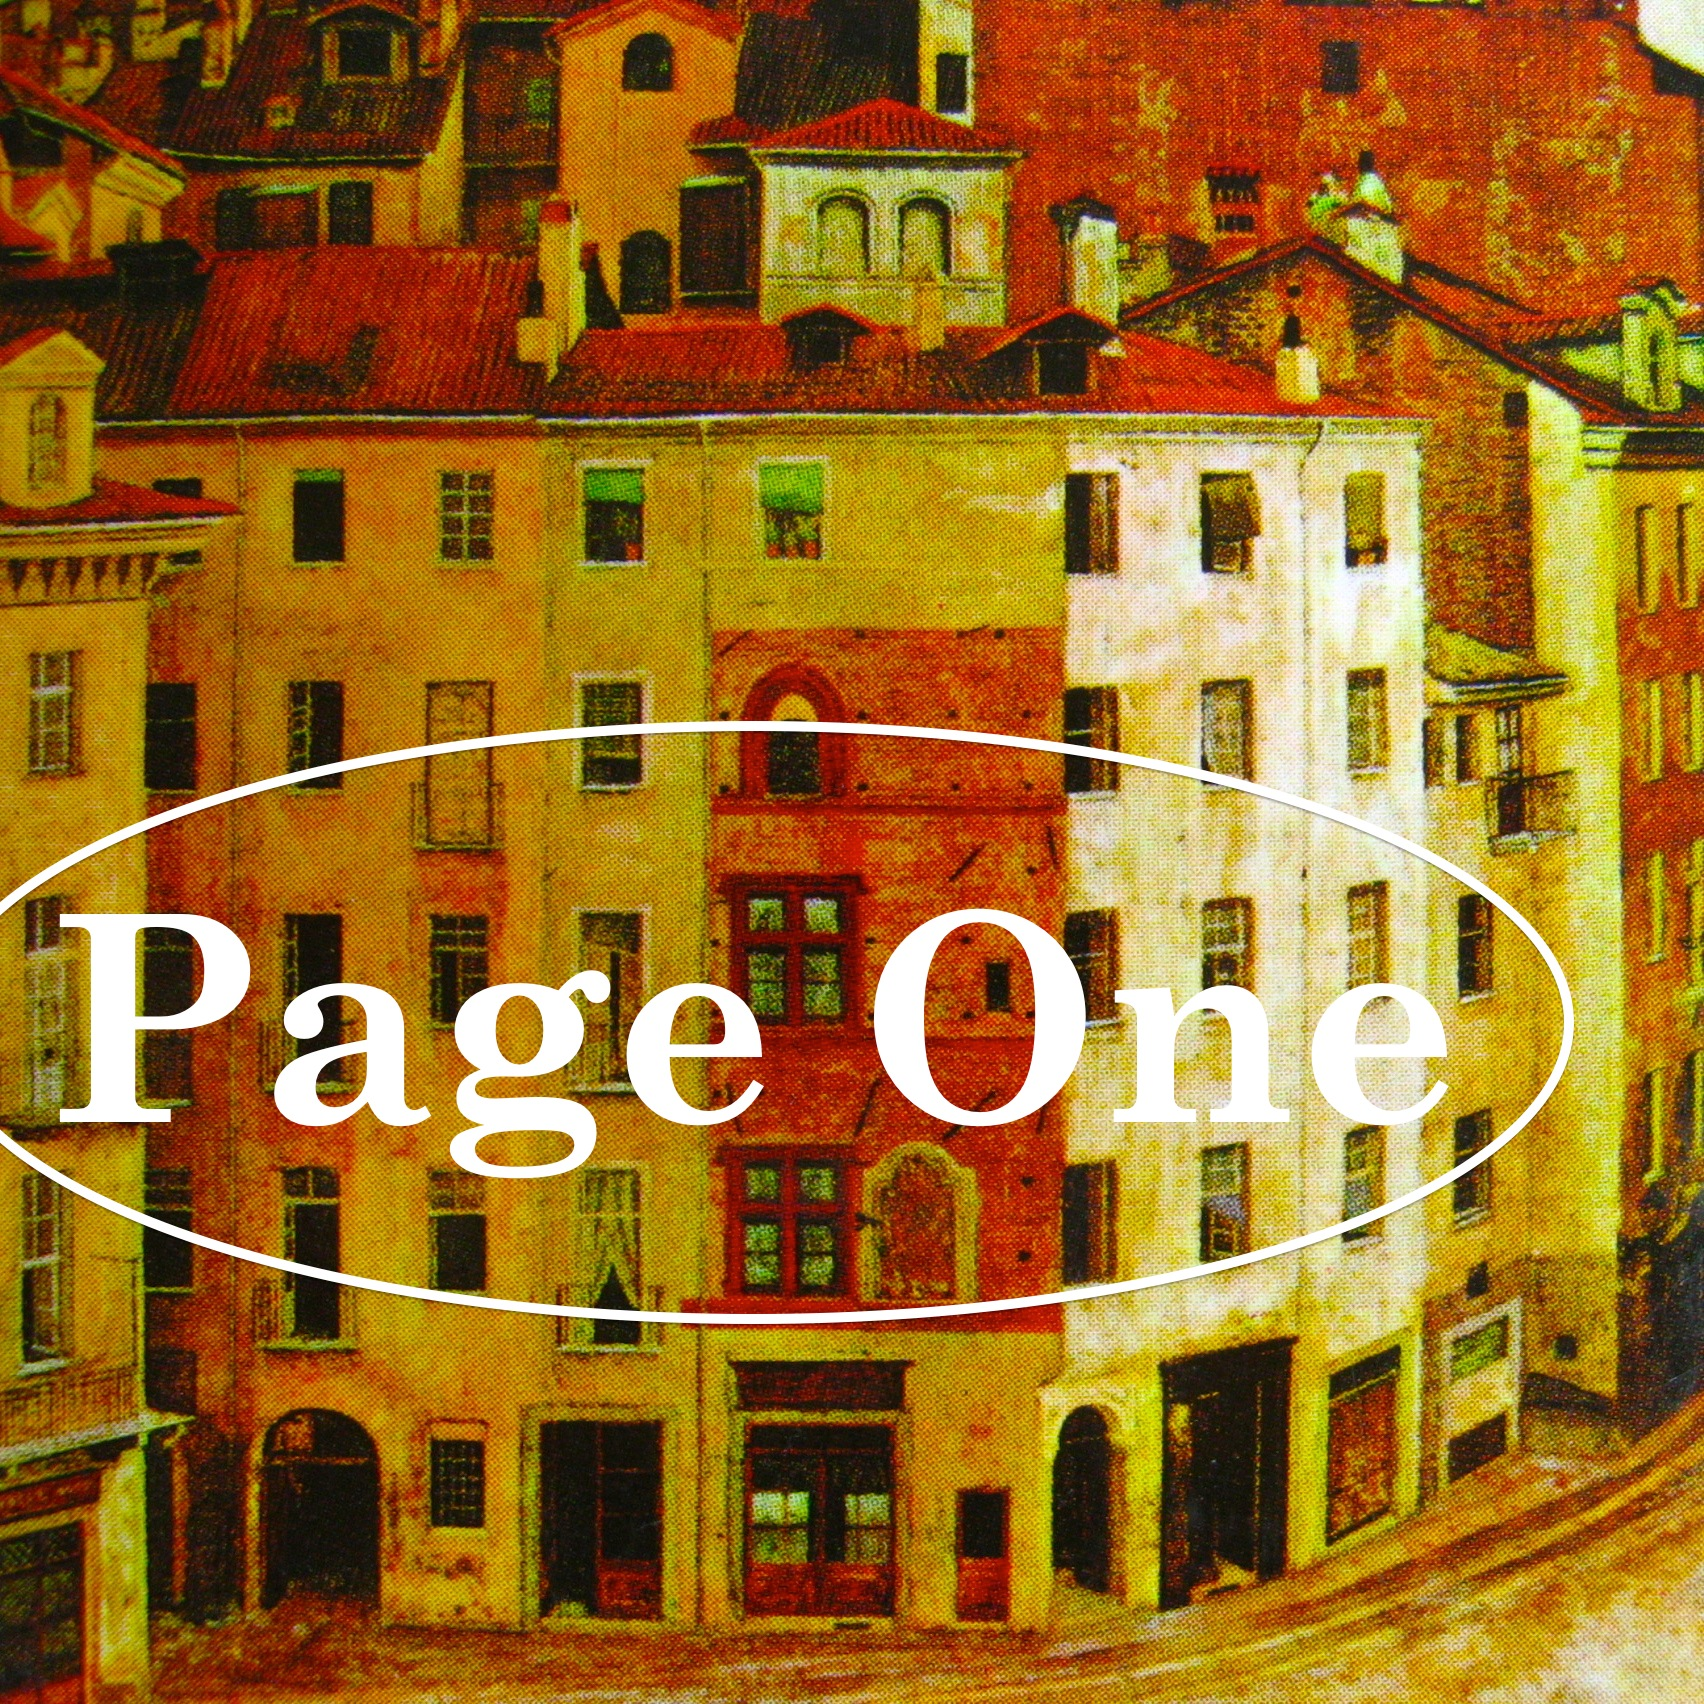 Episode image is a detail from the cover of  Lessico Famigliare  by Natalia Ginzburg, published in 1997 by Einaudi Scuola; cover image:  Antiche case di Torino  (part.) by Francesco Garrone.